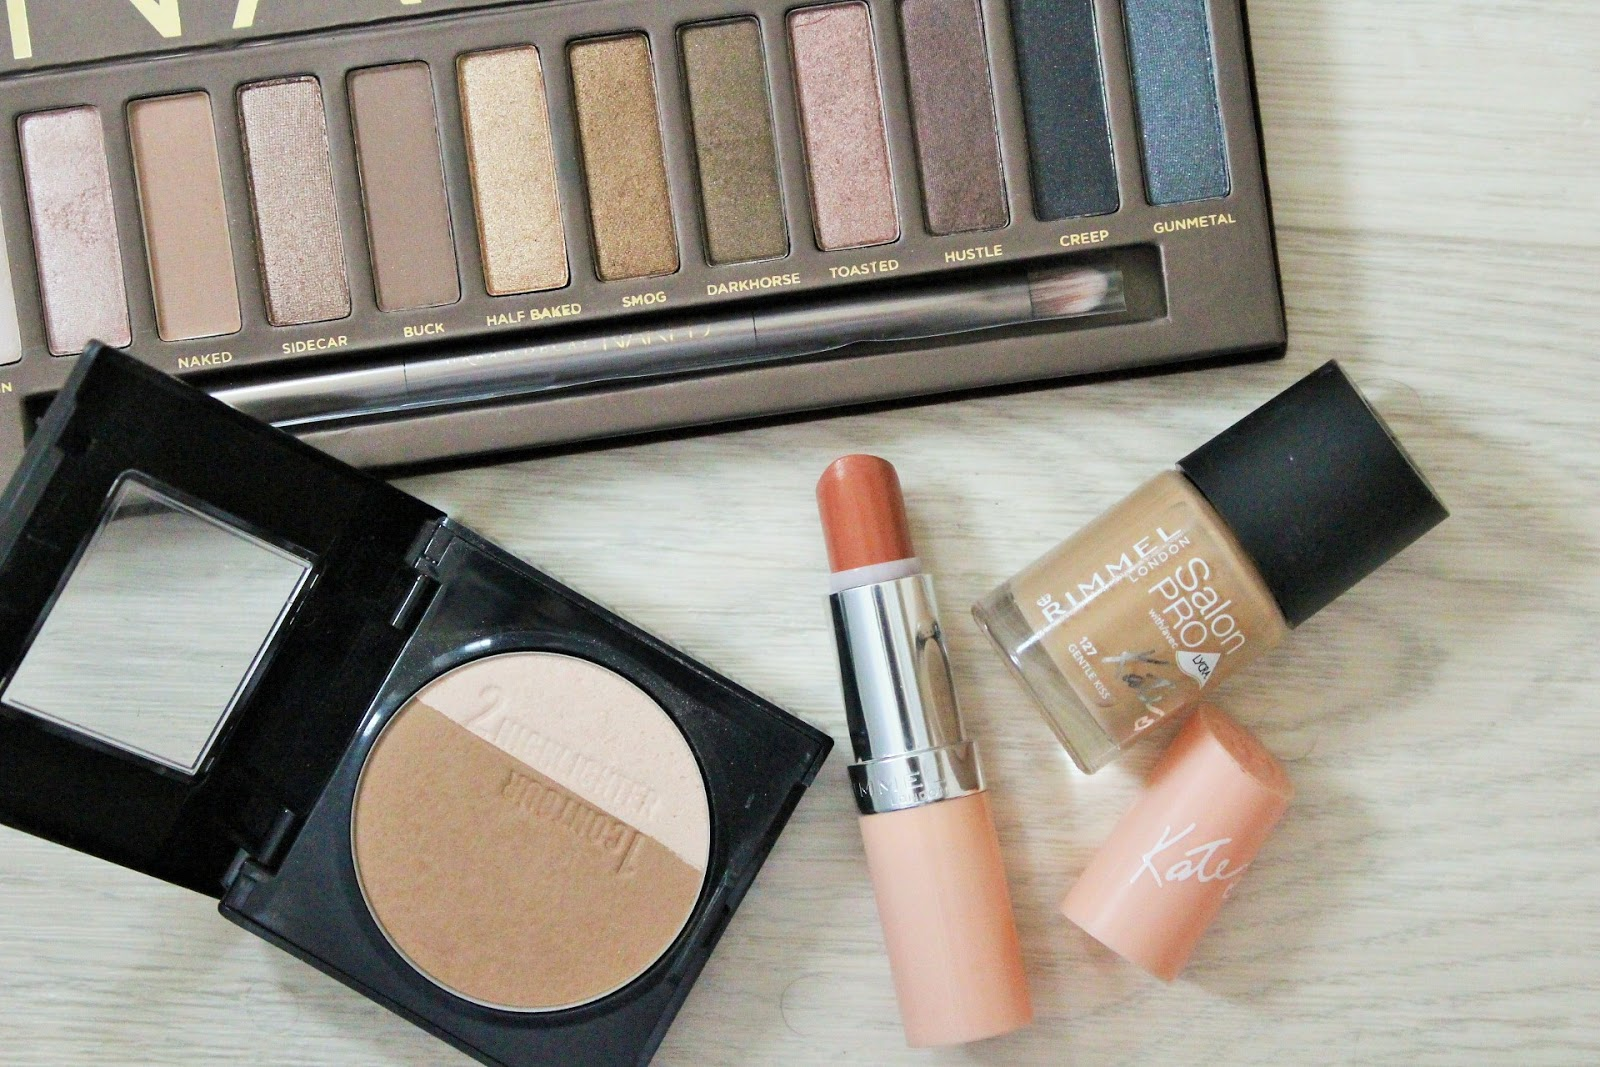 Nude makeup look featuring Rimmel Lasting Finish lipstick by Kate Nude Collection in 43